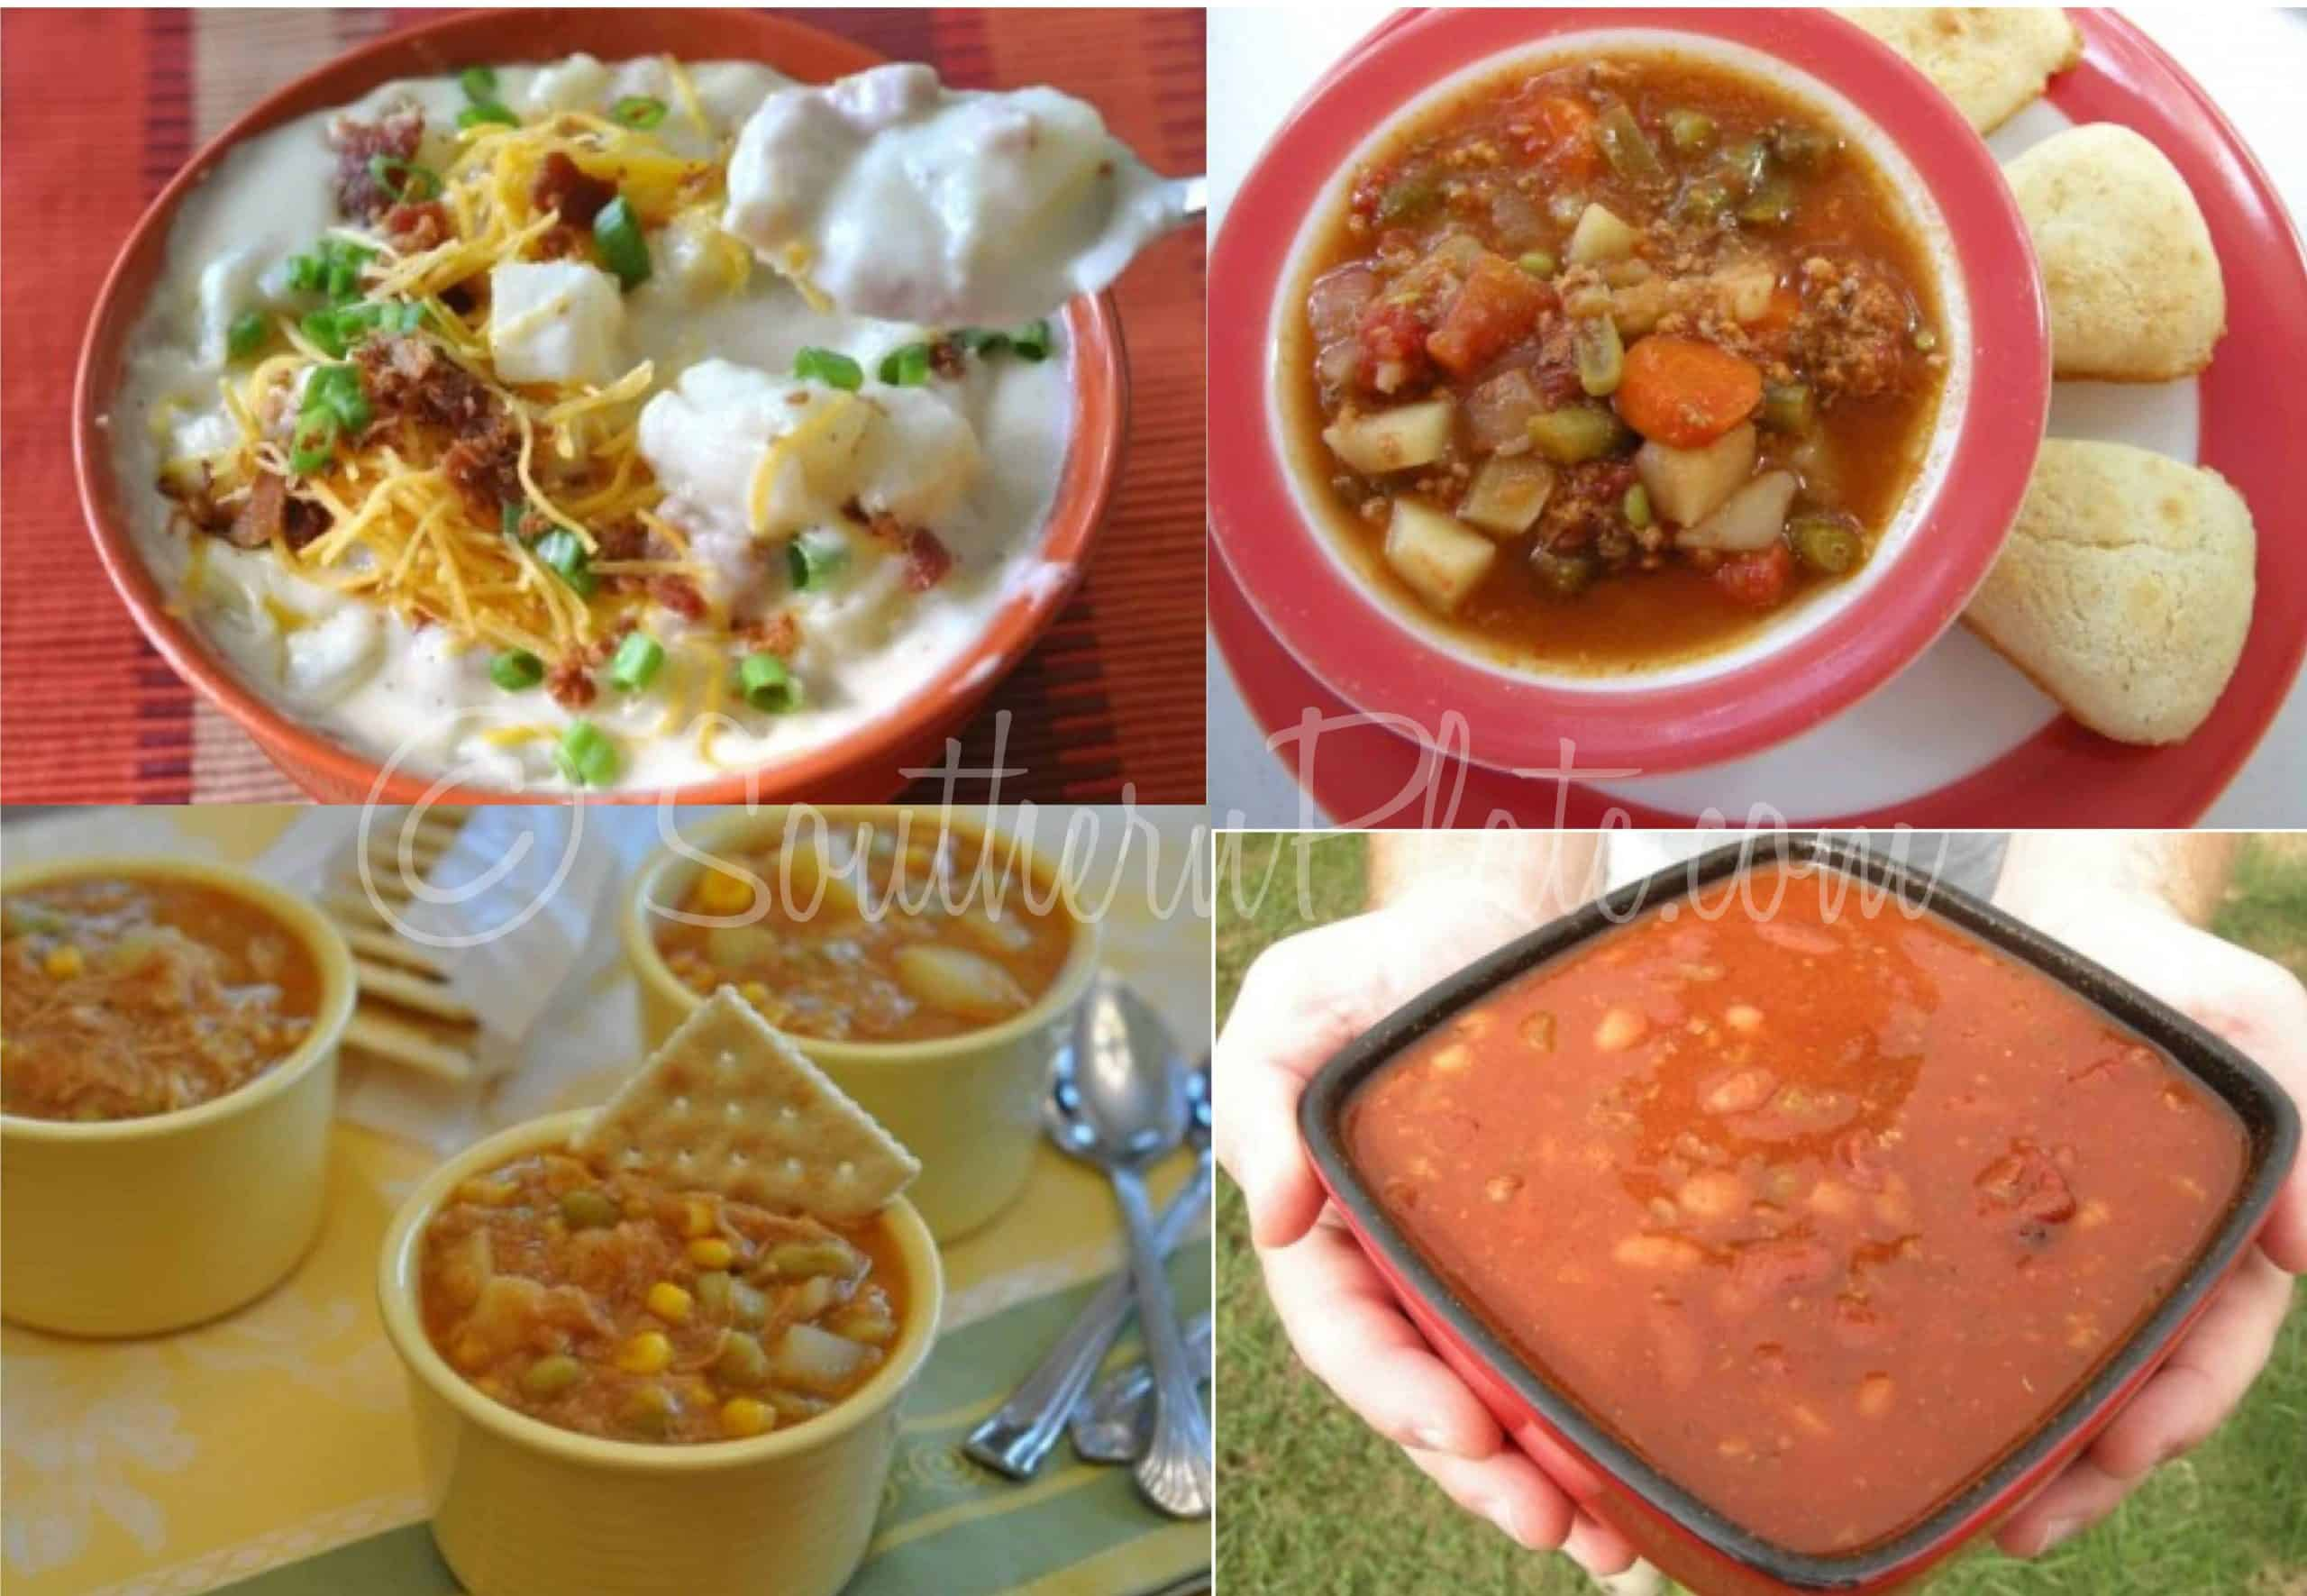 14 Favorite Soup And Stew Recipes Southern Plate